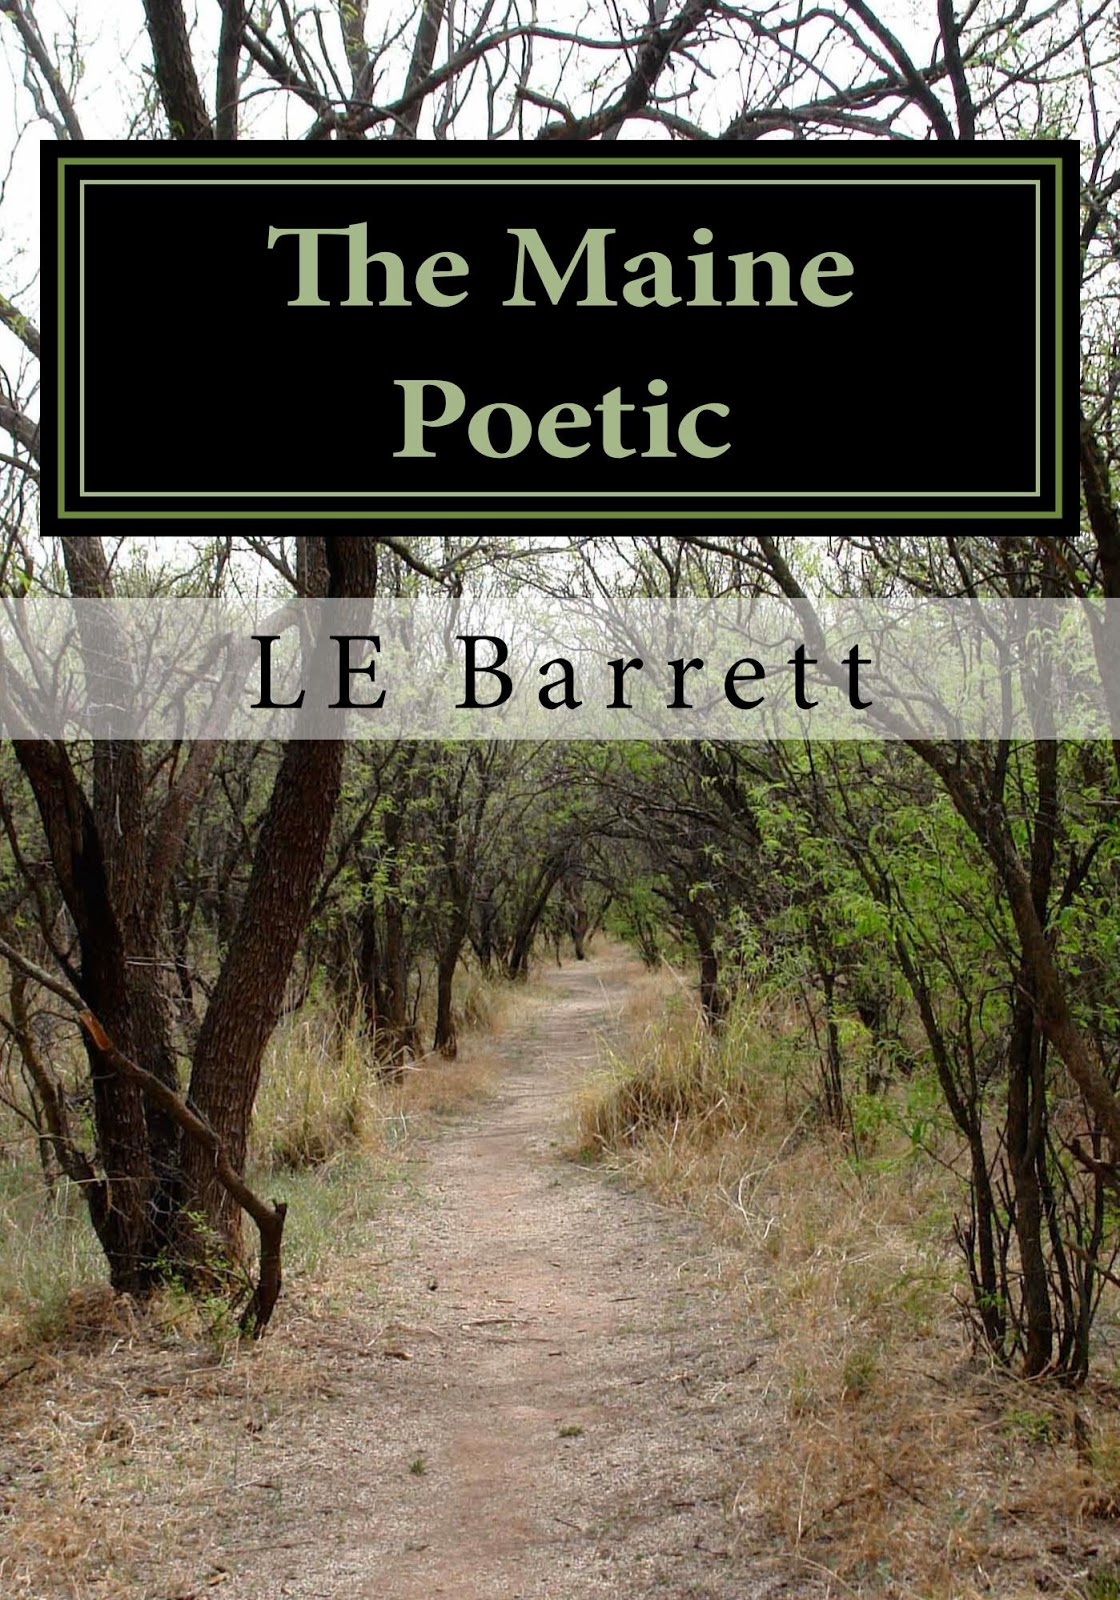 http://www.amazon.com/Maine-Poetic-Barrett/dp/1493745735/ref=la_B00H8AZONS_1_2?s=books&ie=UTF8&qid=1391197910&sr=1-2